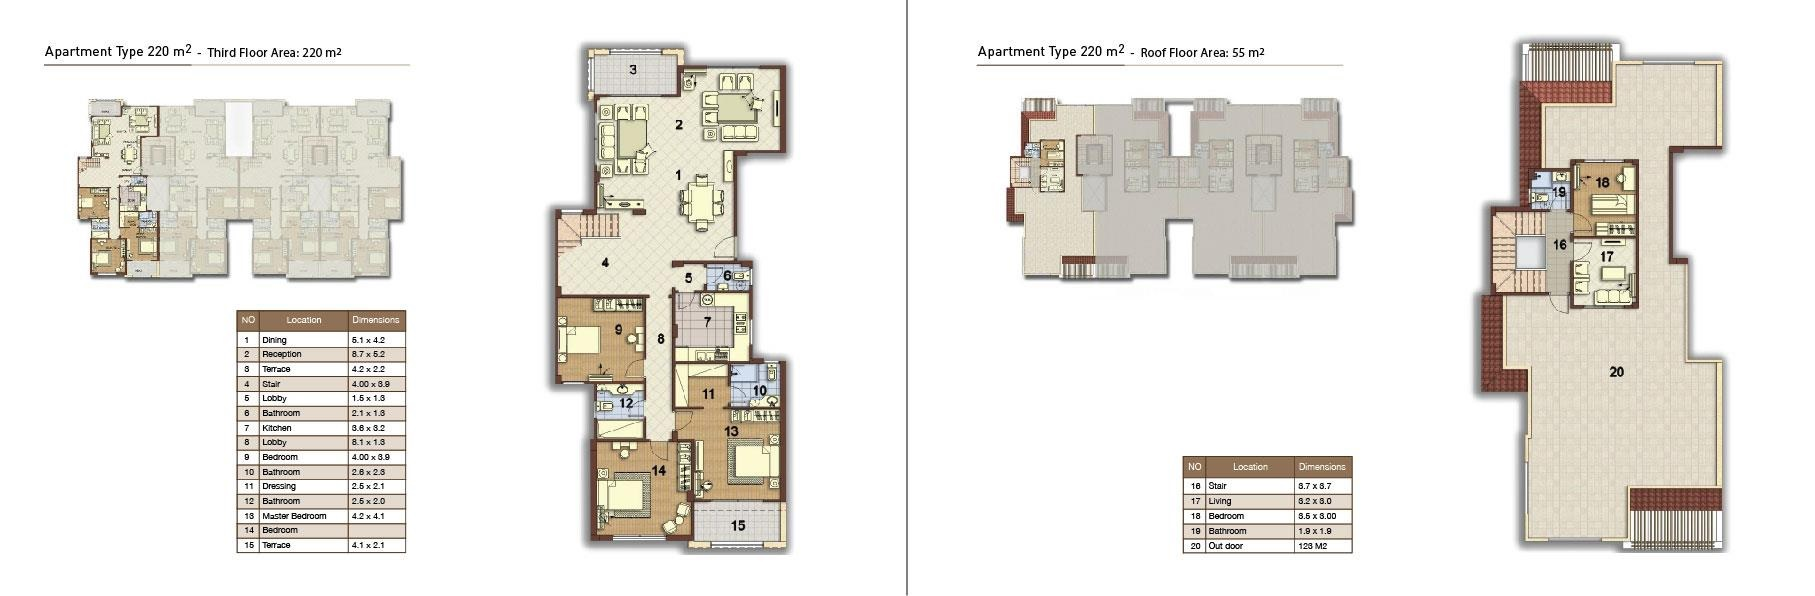 apartment type 220 02